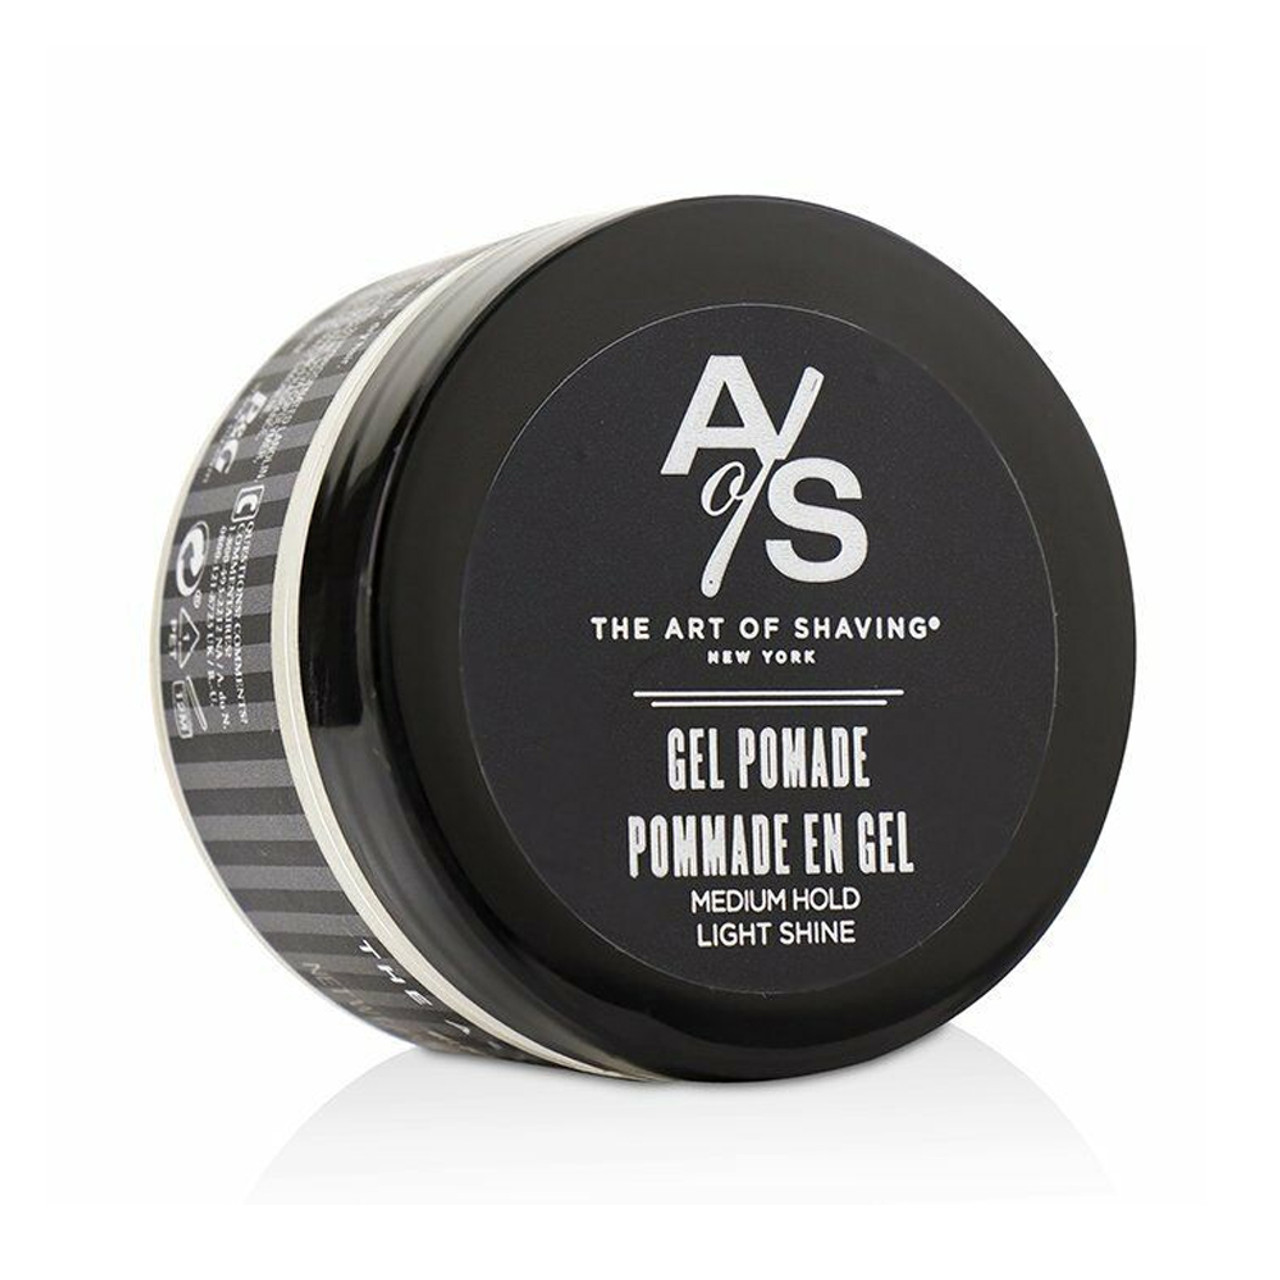 The Art Of Shaving Gel Pomade